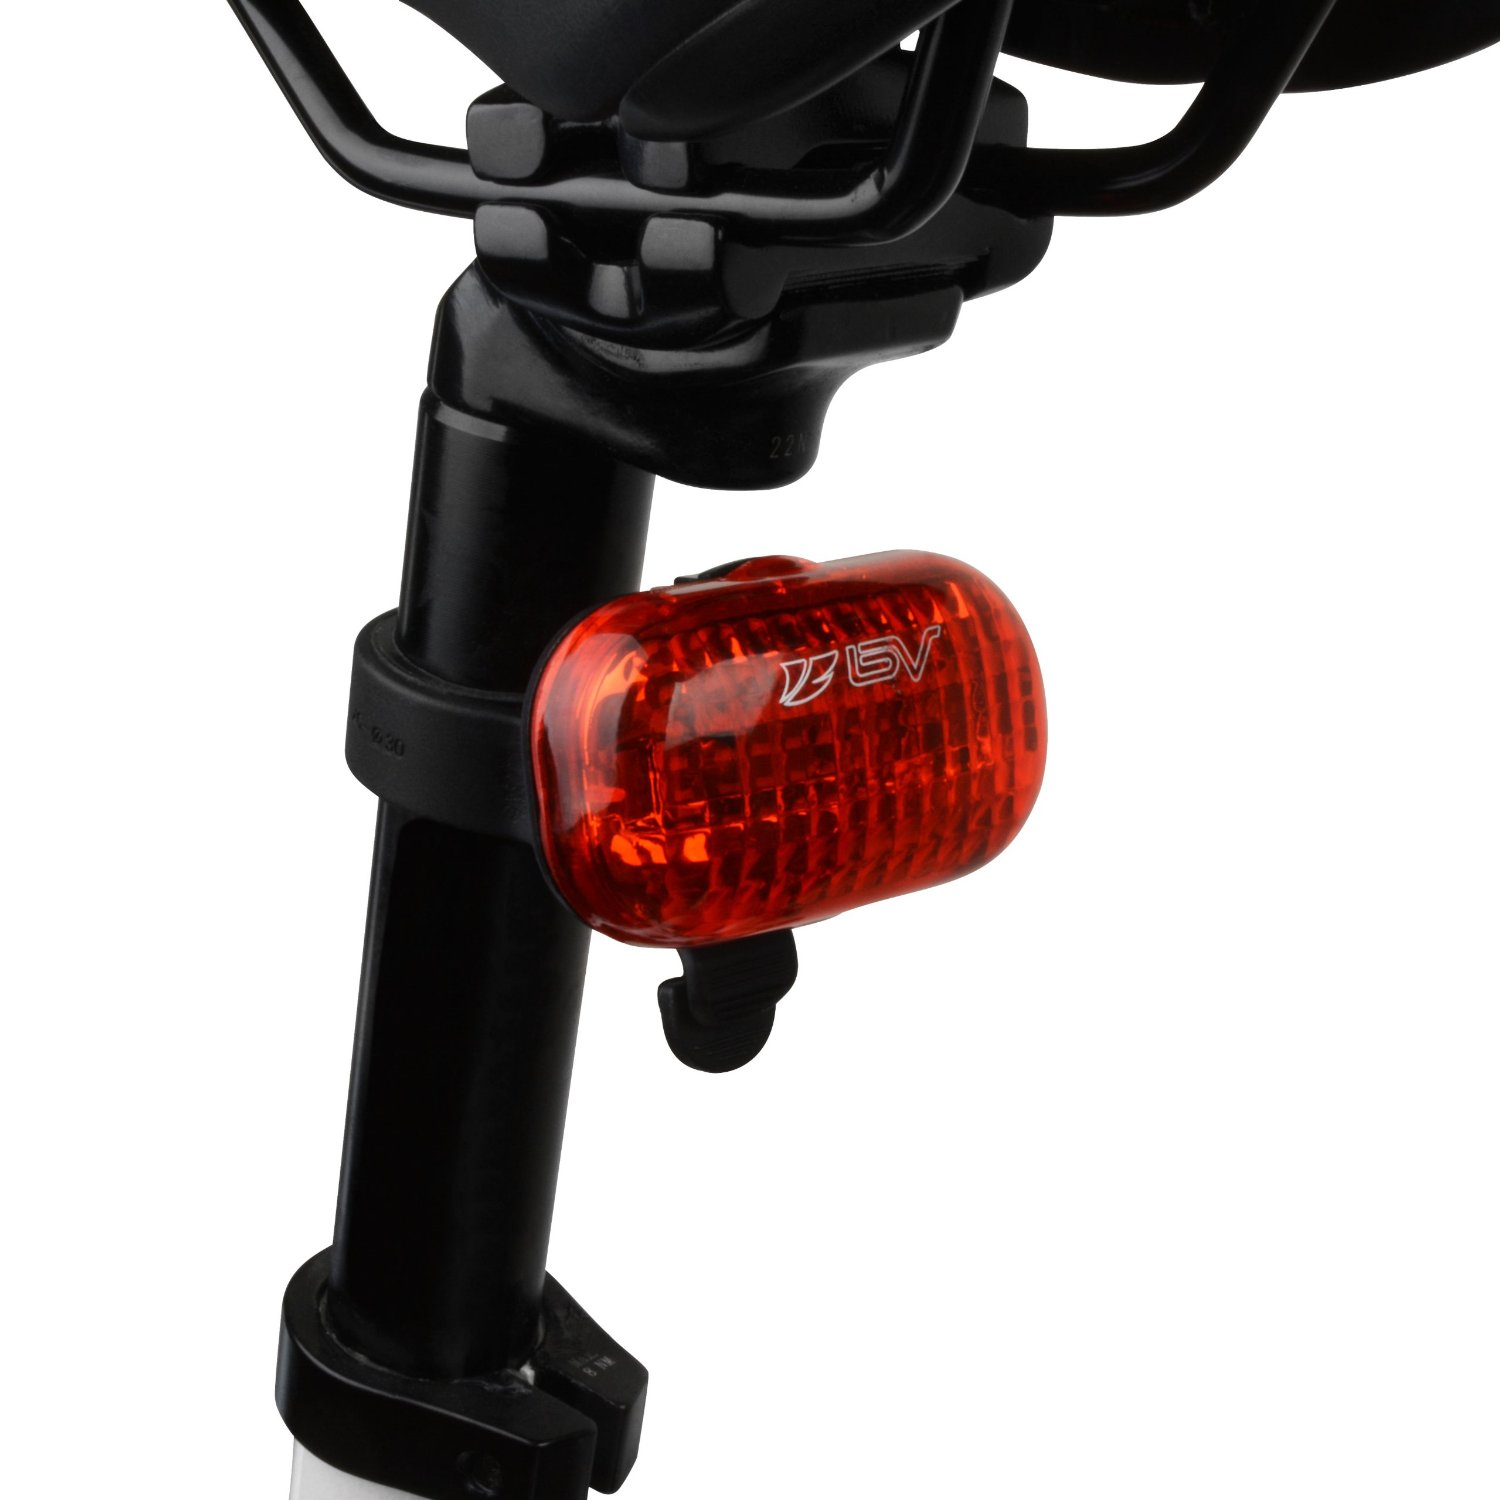 3 Led Taillight Quick-Releas Bv Bicycle Light Set Super Bright 5 Led Headlight